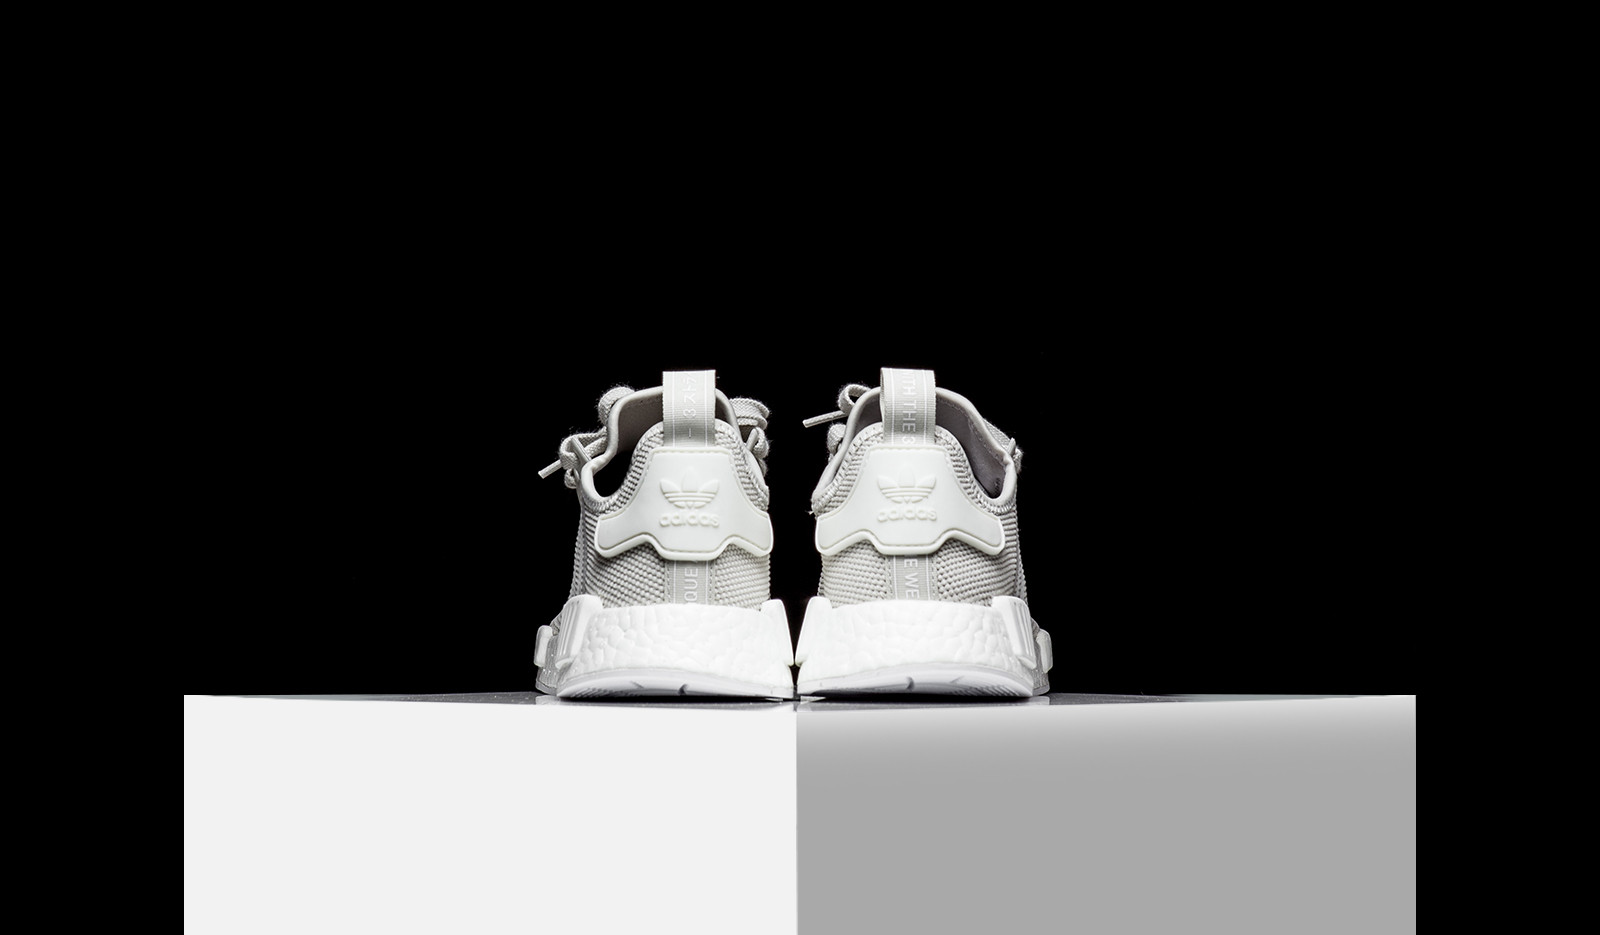 adidas nmd r1 talco / offwhite due in piedi le due offwhite 423170